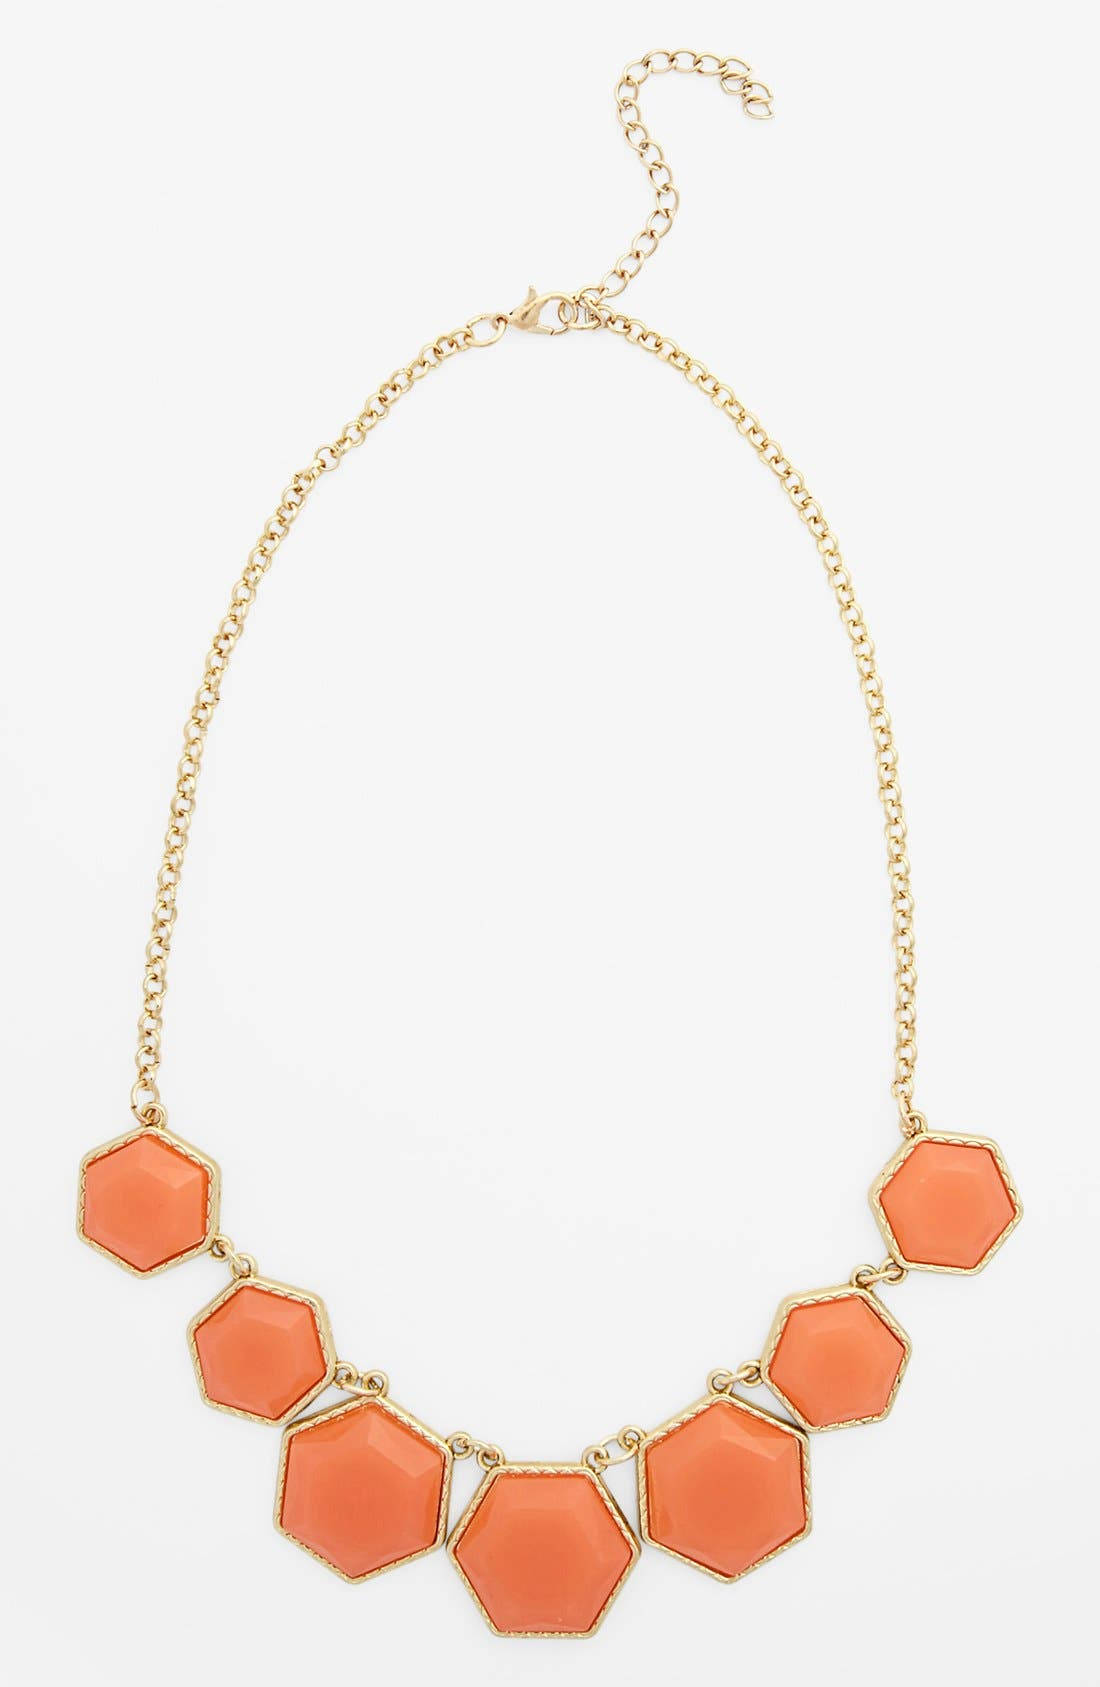 Alternate Image 1 Selected - Stephan & Co. Geometric Statement Necklace